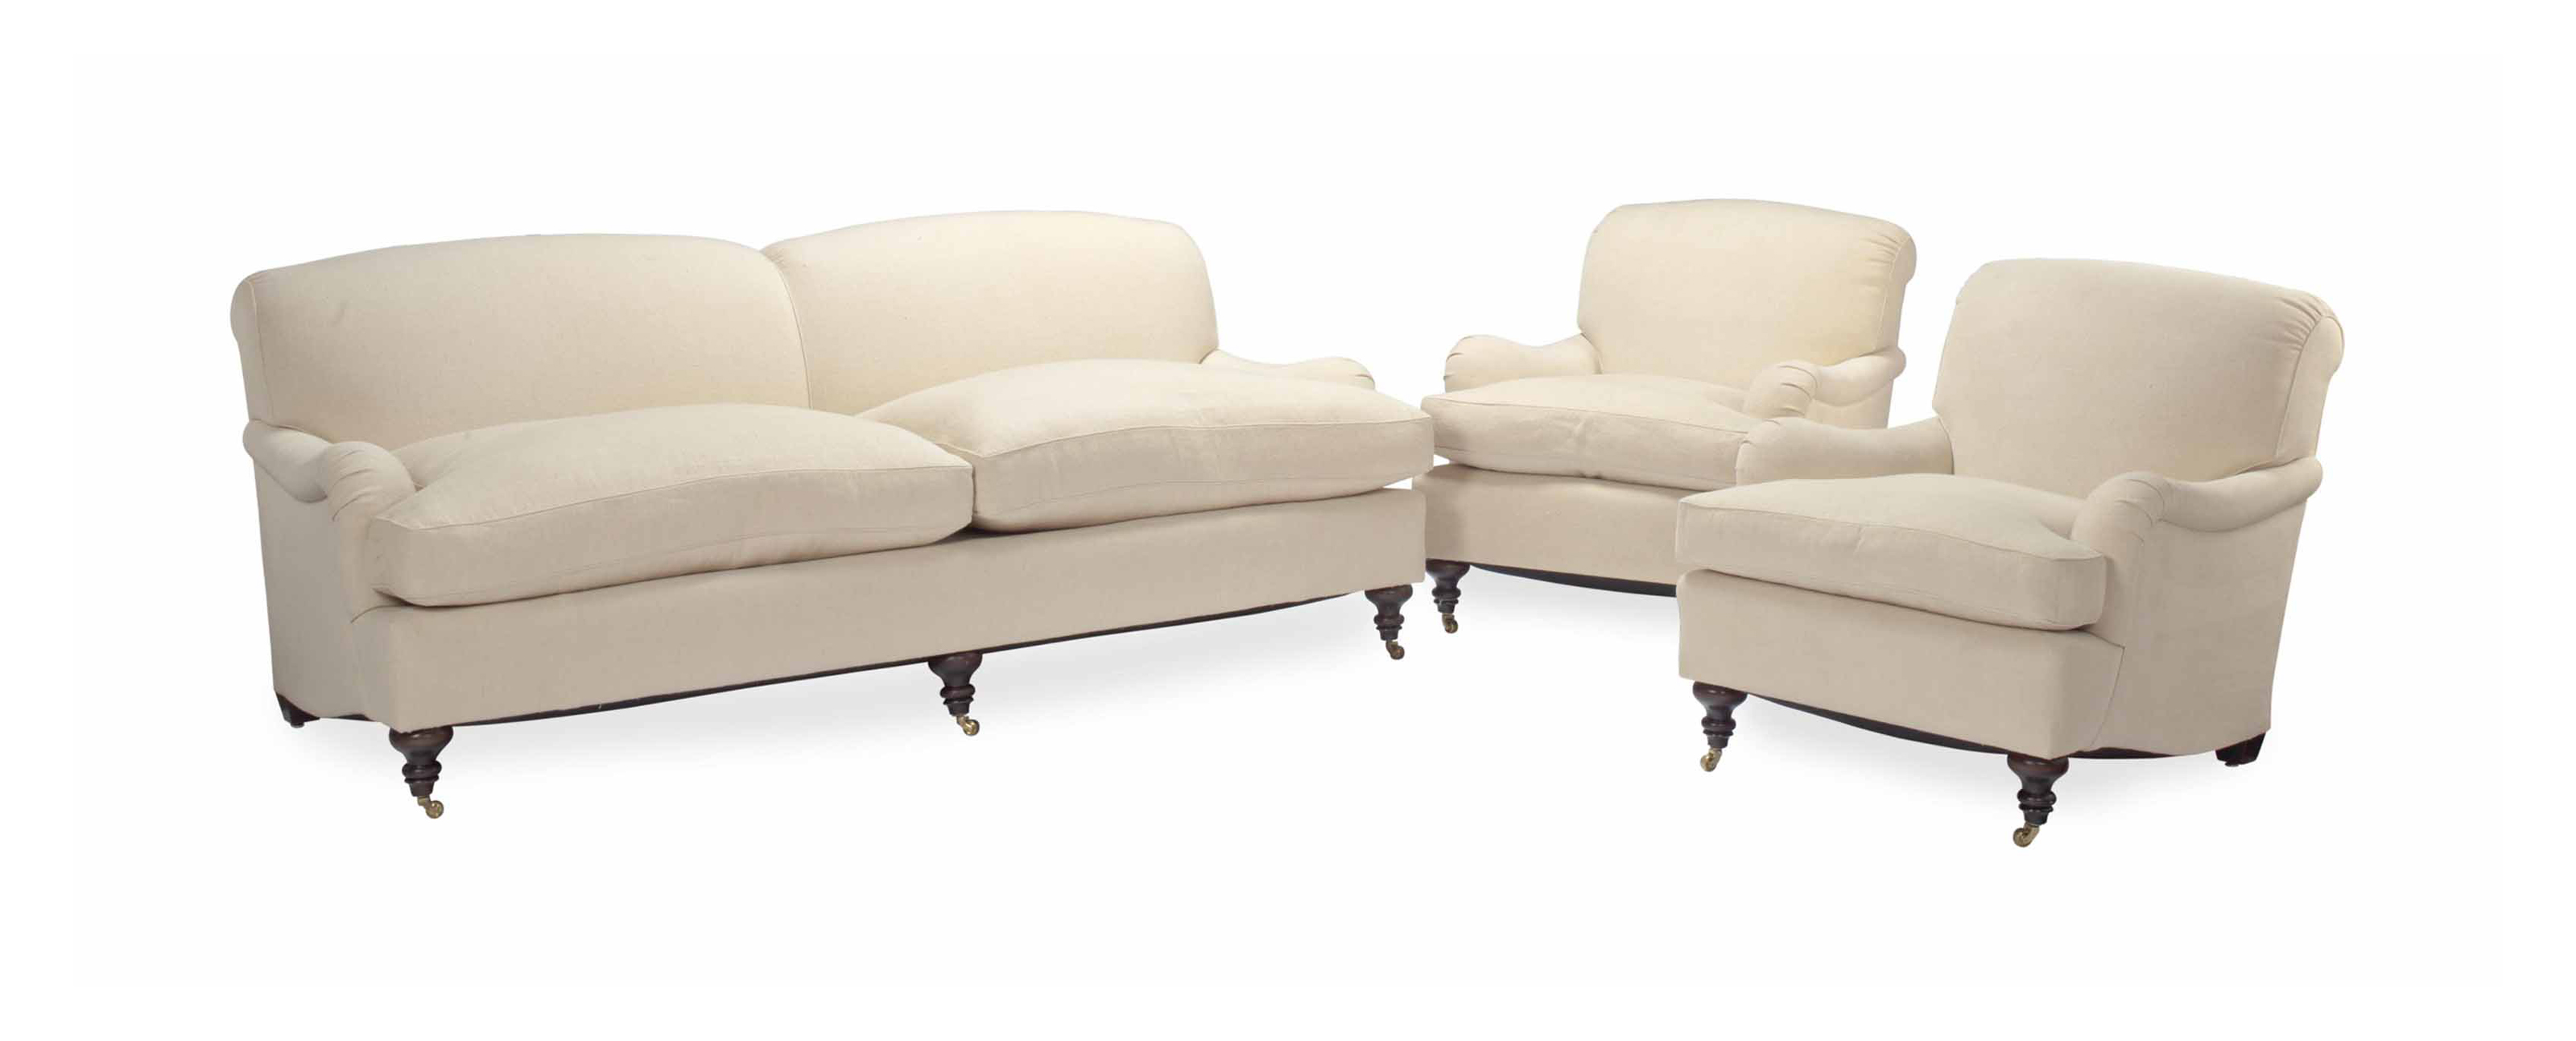 A CREAM LINEN-UPHOLSTERED TWO-SEAT SOFA AND A PAIR OF CLUB CHAIRS,